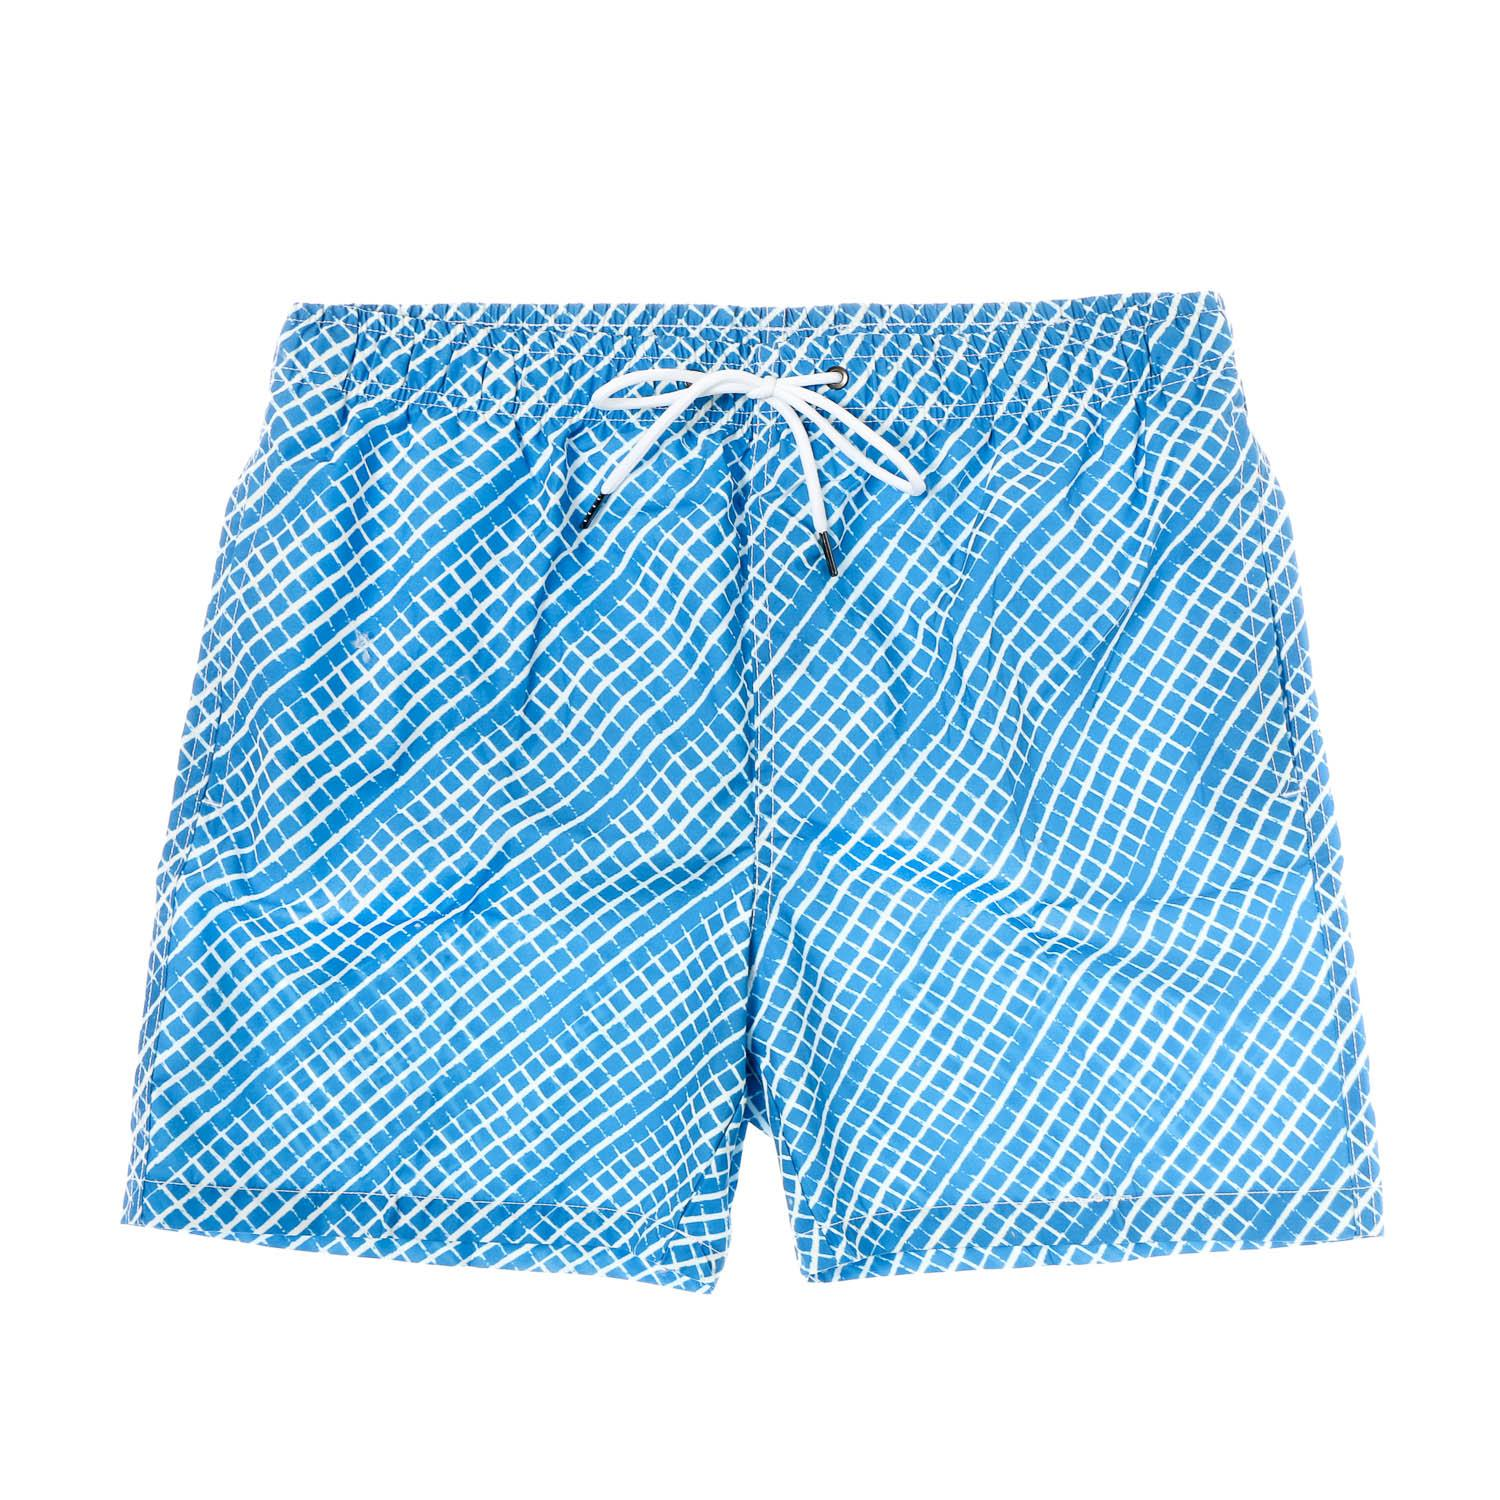 67f4e87346 Swimwear for Men for sale - Mens Swimming Wear online brands, prices ...